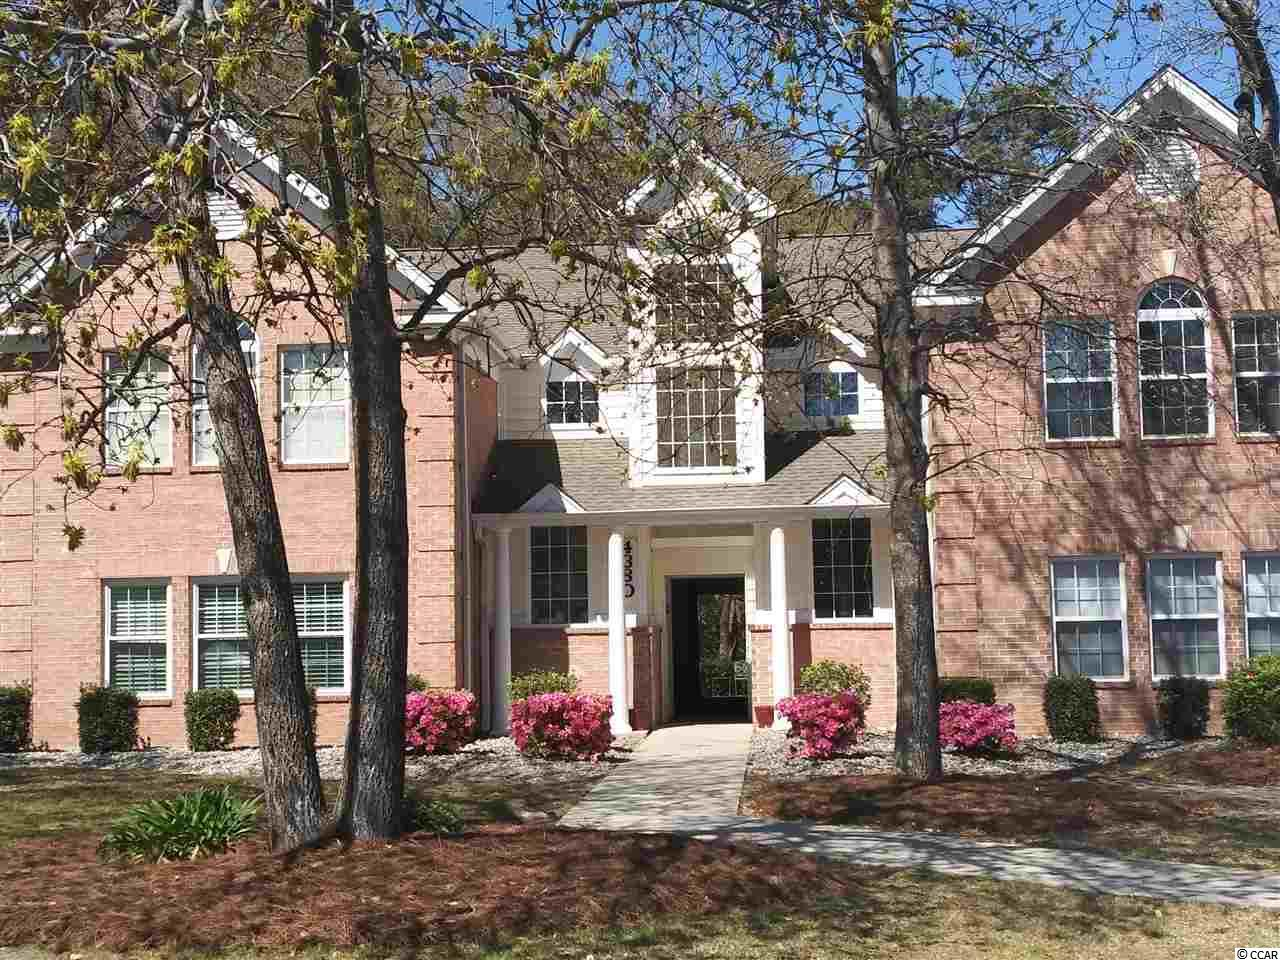 """This 1st floor unit is a great deal! Extra large master bedroom with walk in closet and additional storage in this unit. It backs up to wooded area so privacy is here. Original upgrades to appliances. Lots of potential, would make a great starter home, 2nd home or investment property. The unit is currently smoked in and is being Sold """"AS IS"""". The community allows for owner to have 1 pet, short (7 consecutive days) and long term rentals. There is on site clubhouse, pool, tennis courts and basketball court. This is a must see! All Measurements are approximate and should be verified by the buyer."""